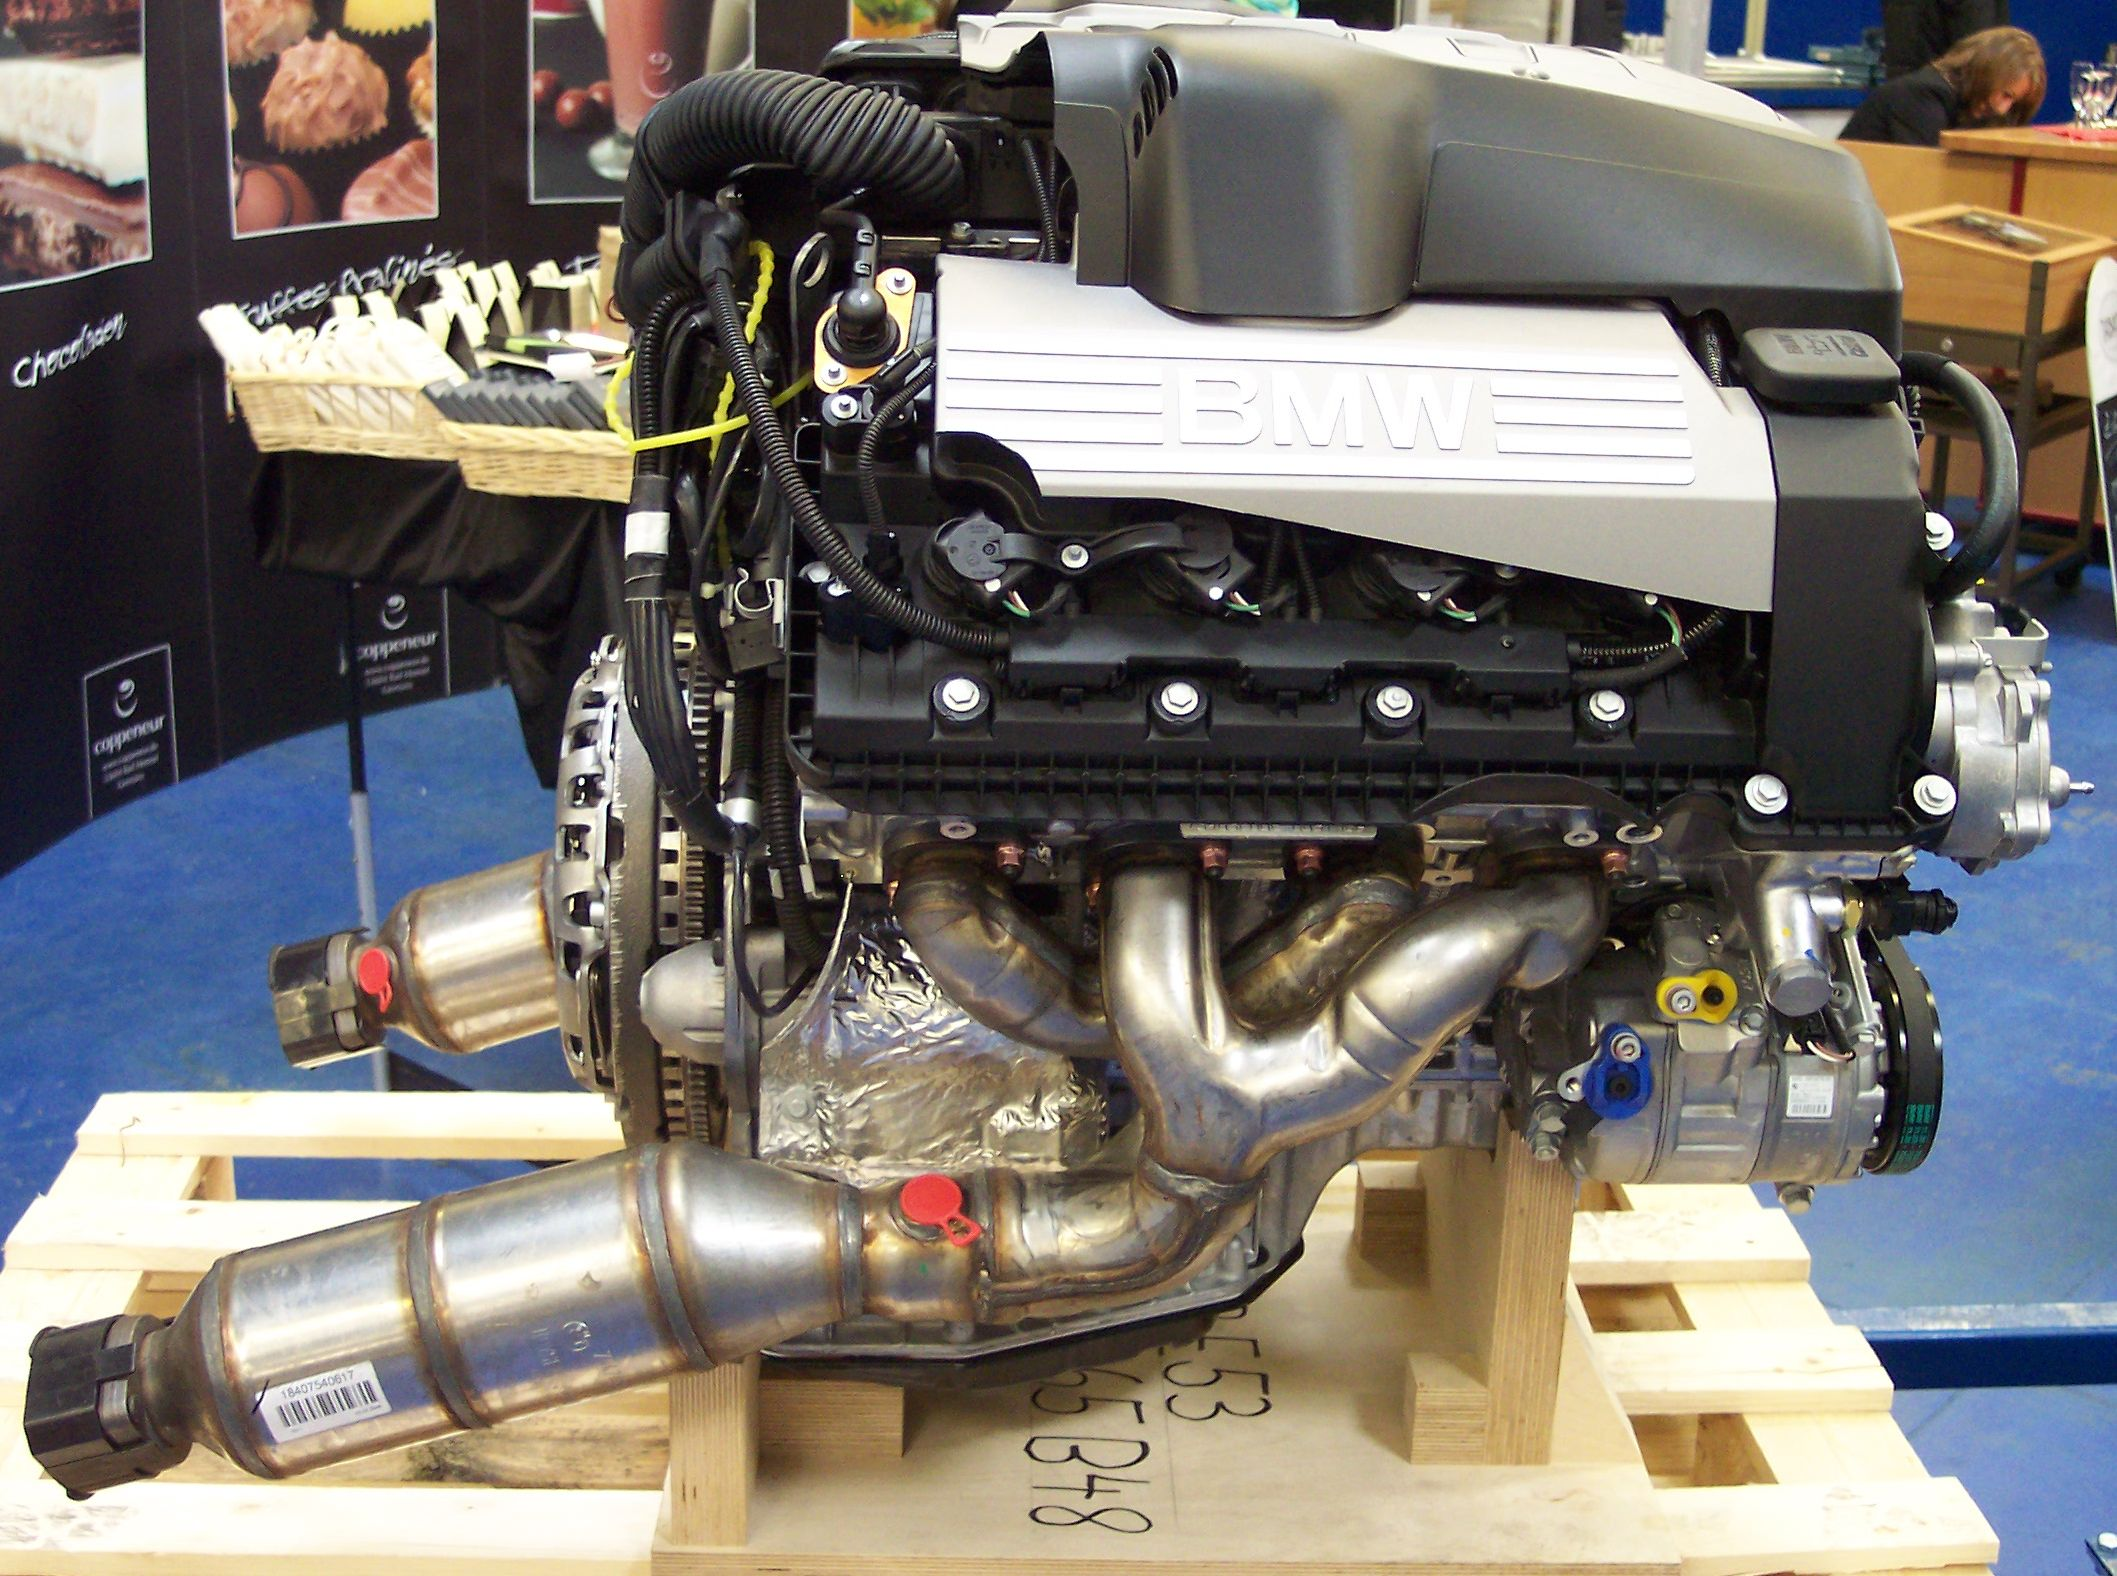 bmw 4 v8 engine bmw get image about wiring diagram file wiesmann produktion 4 bmw v8 engine jpg